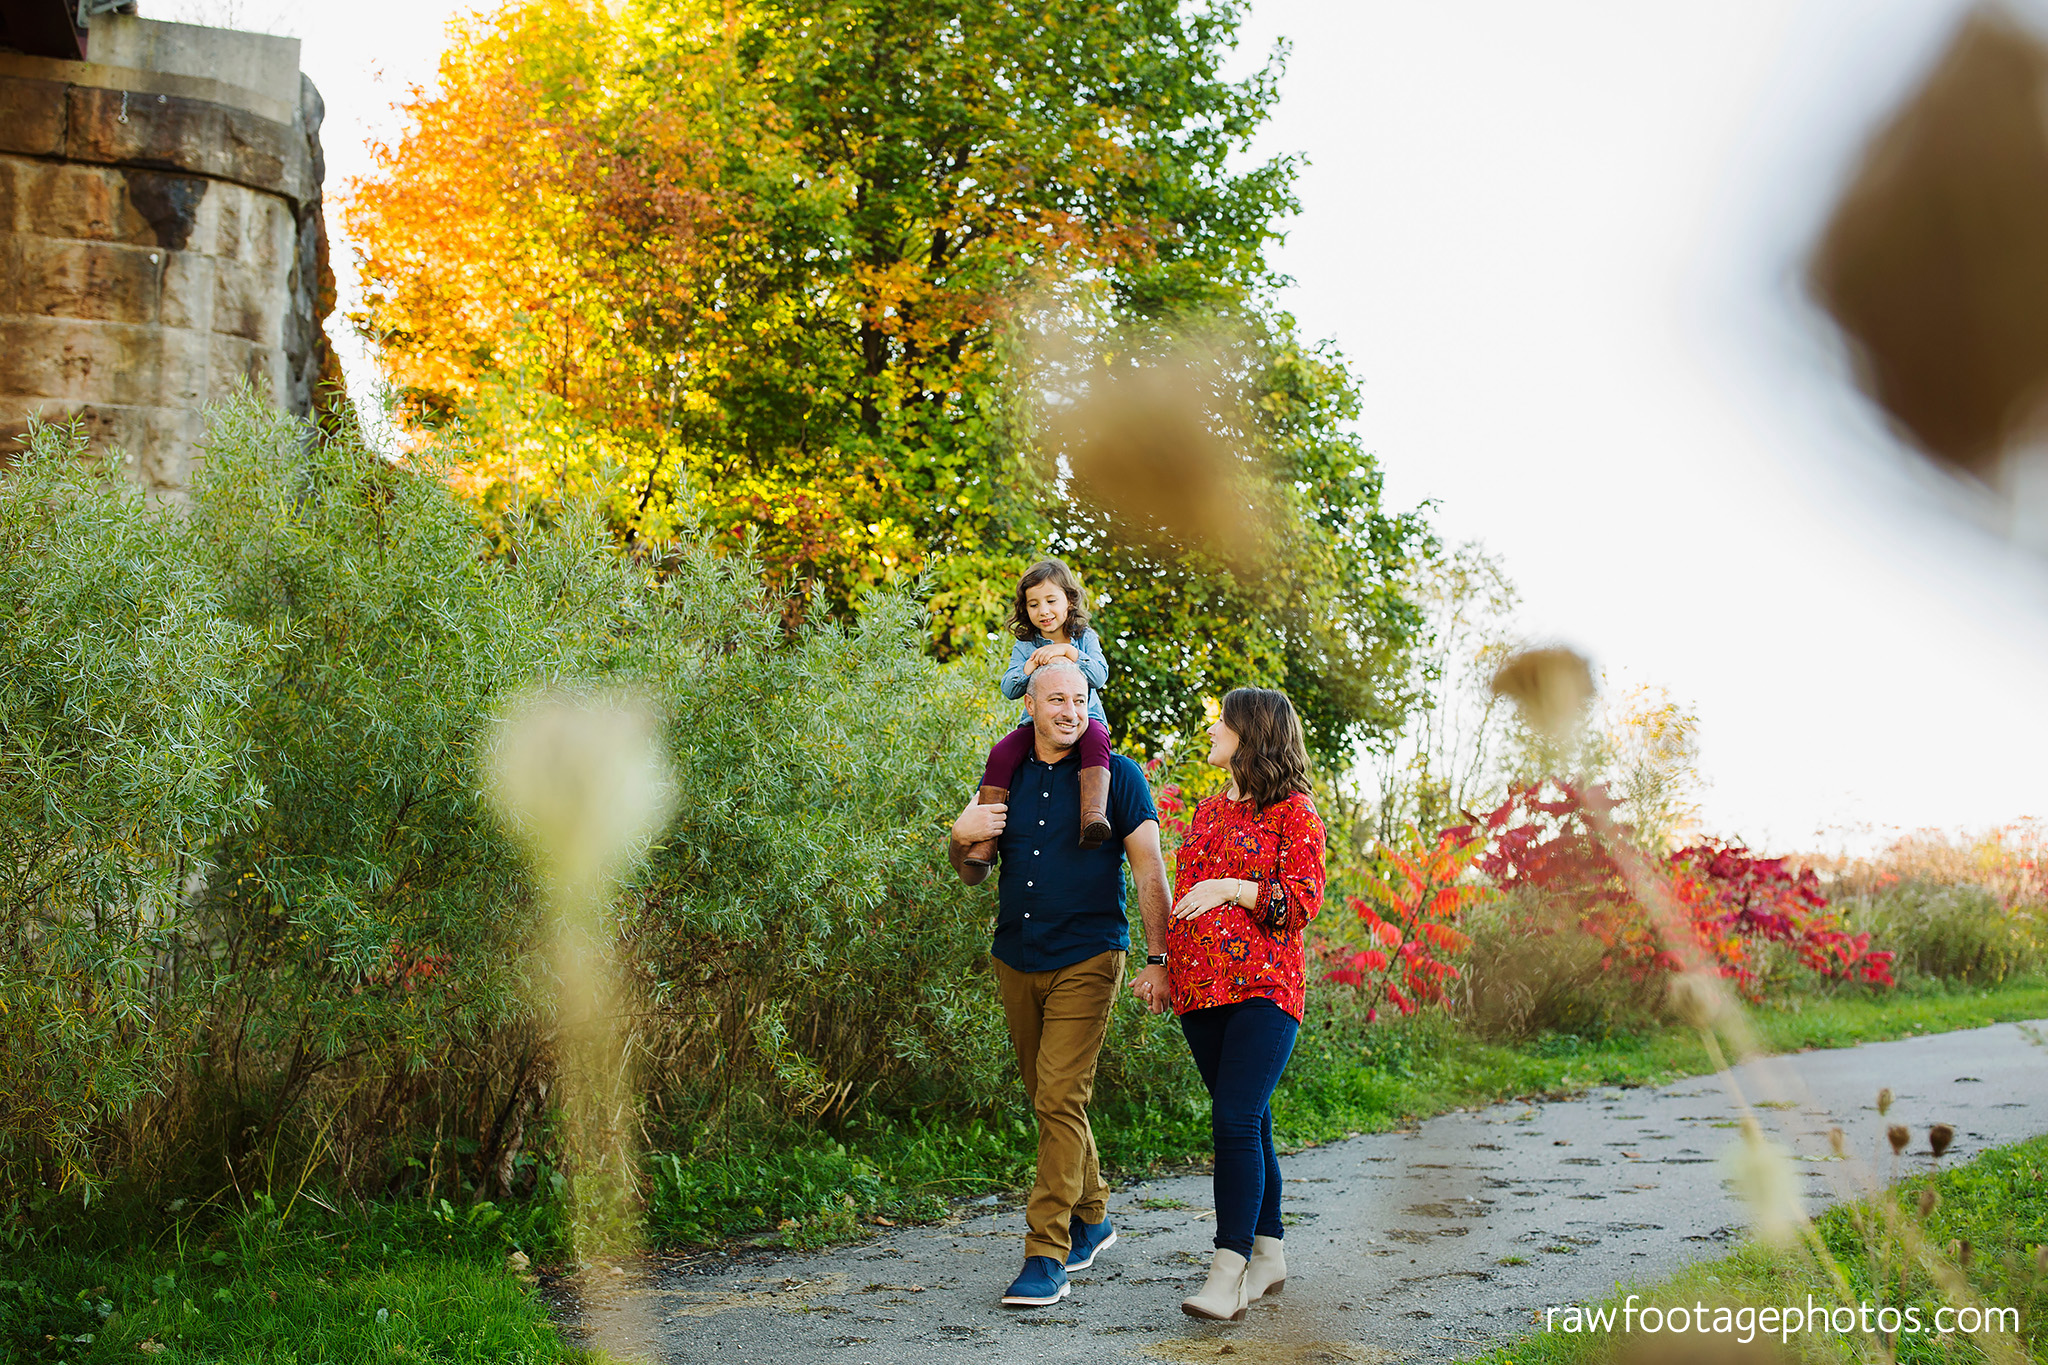 london_ontario_family_photographer-golden_hour_maternity_session-raw_footage_photography033.jpg